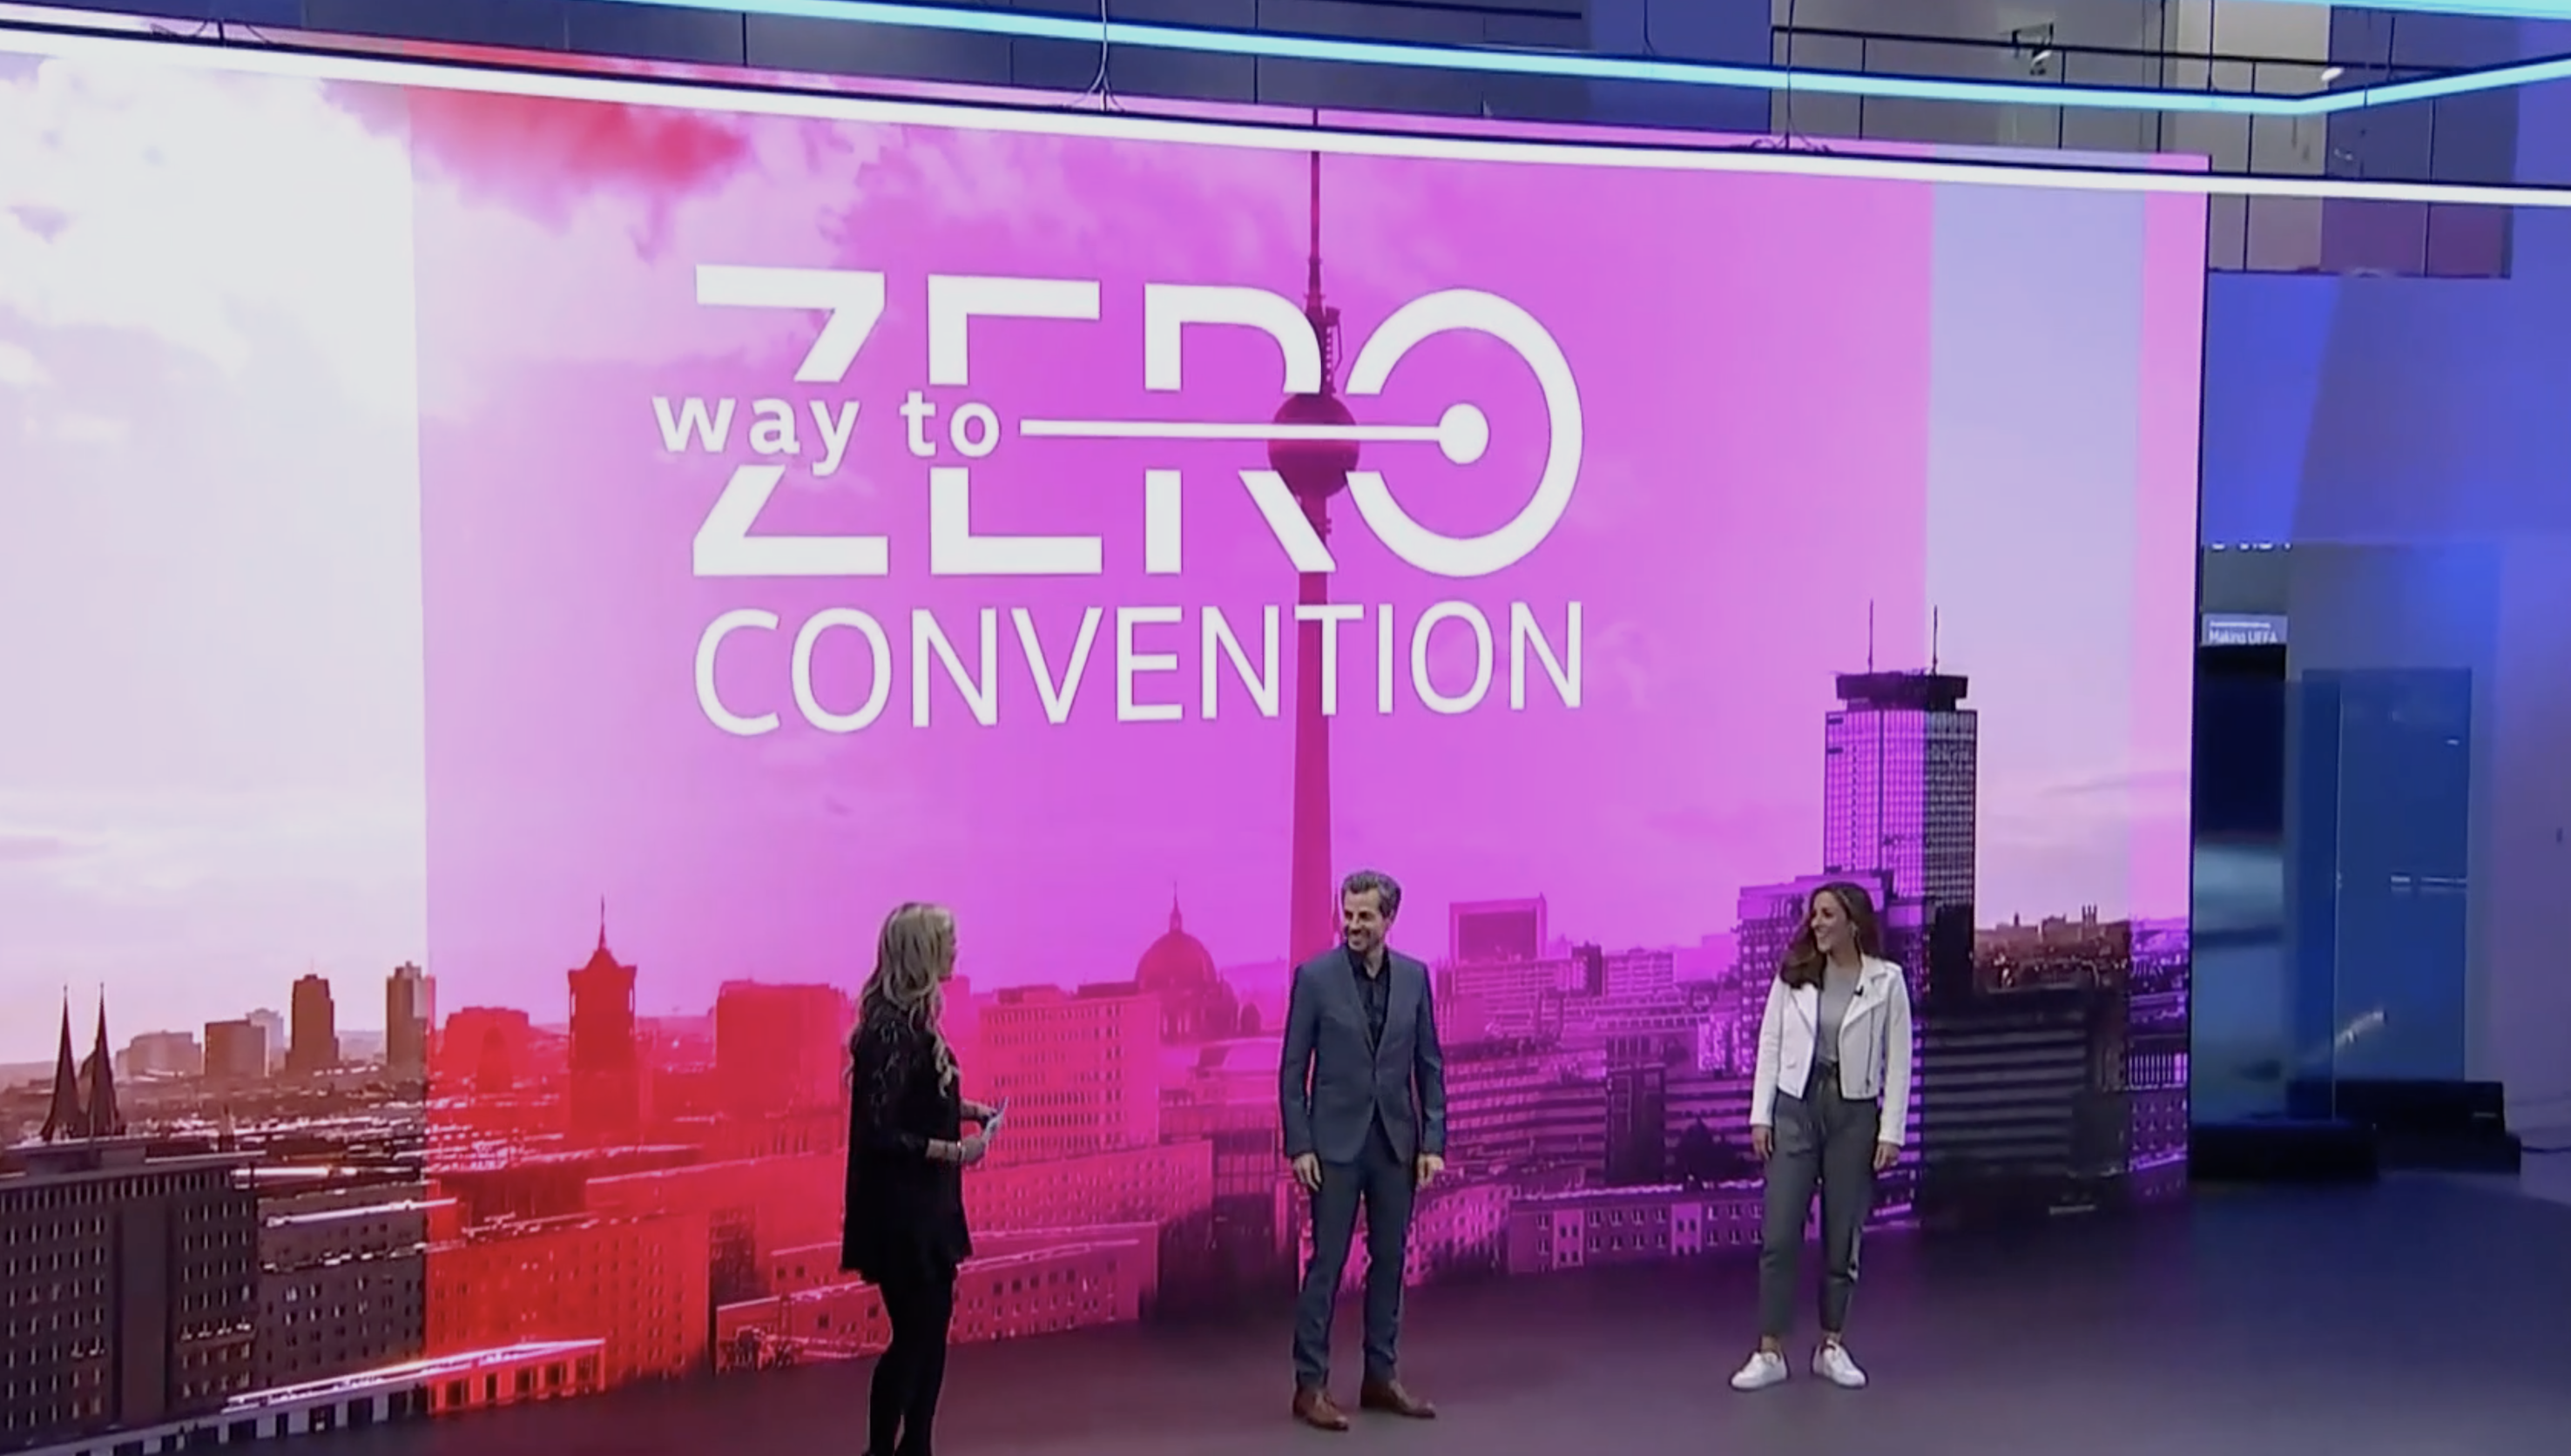 2021 VW Way to Zero Convention_On Stage